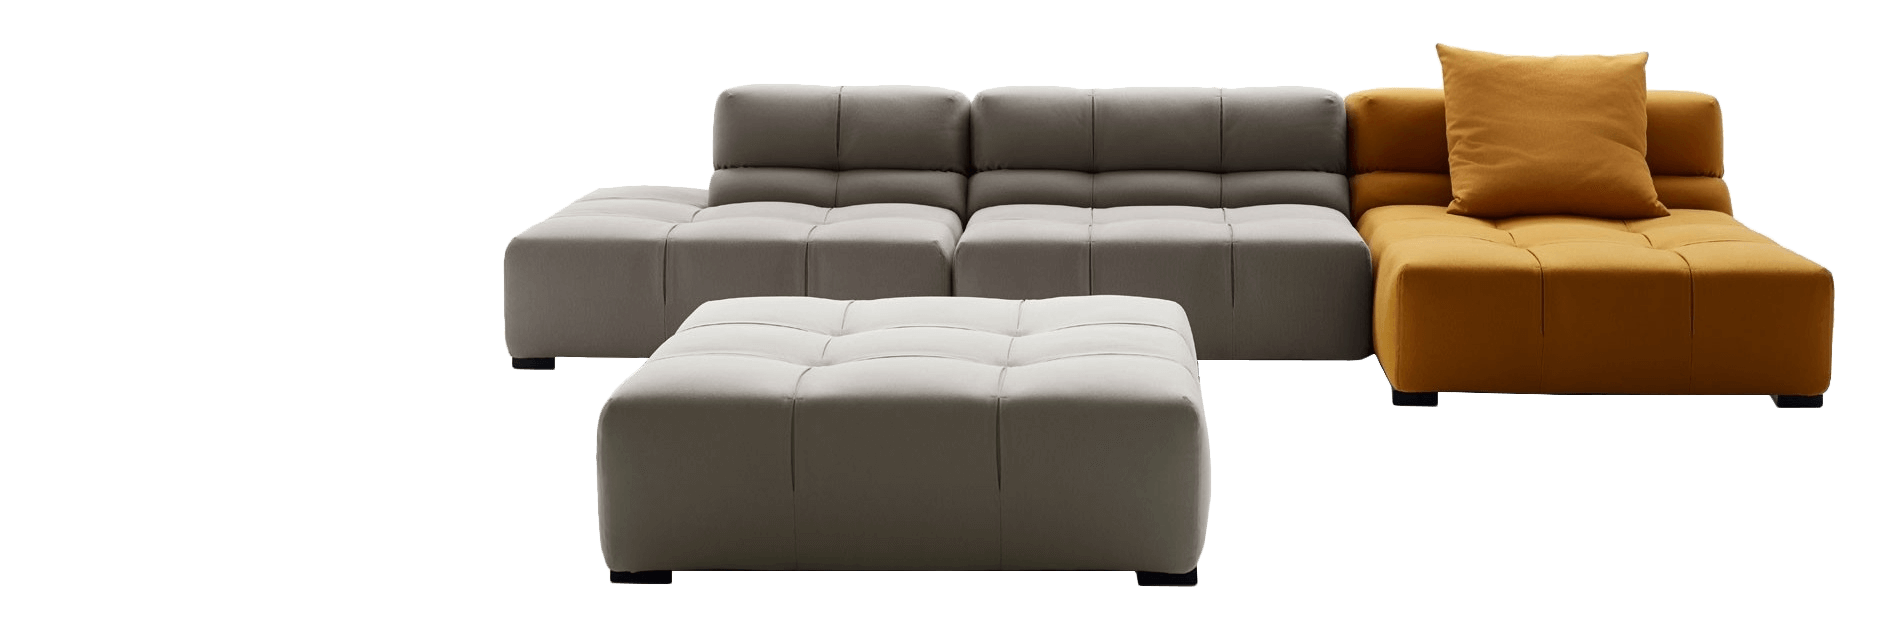 Sofas with Chaise Longue